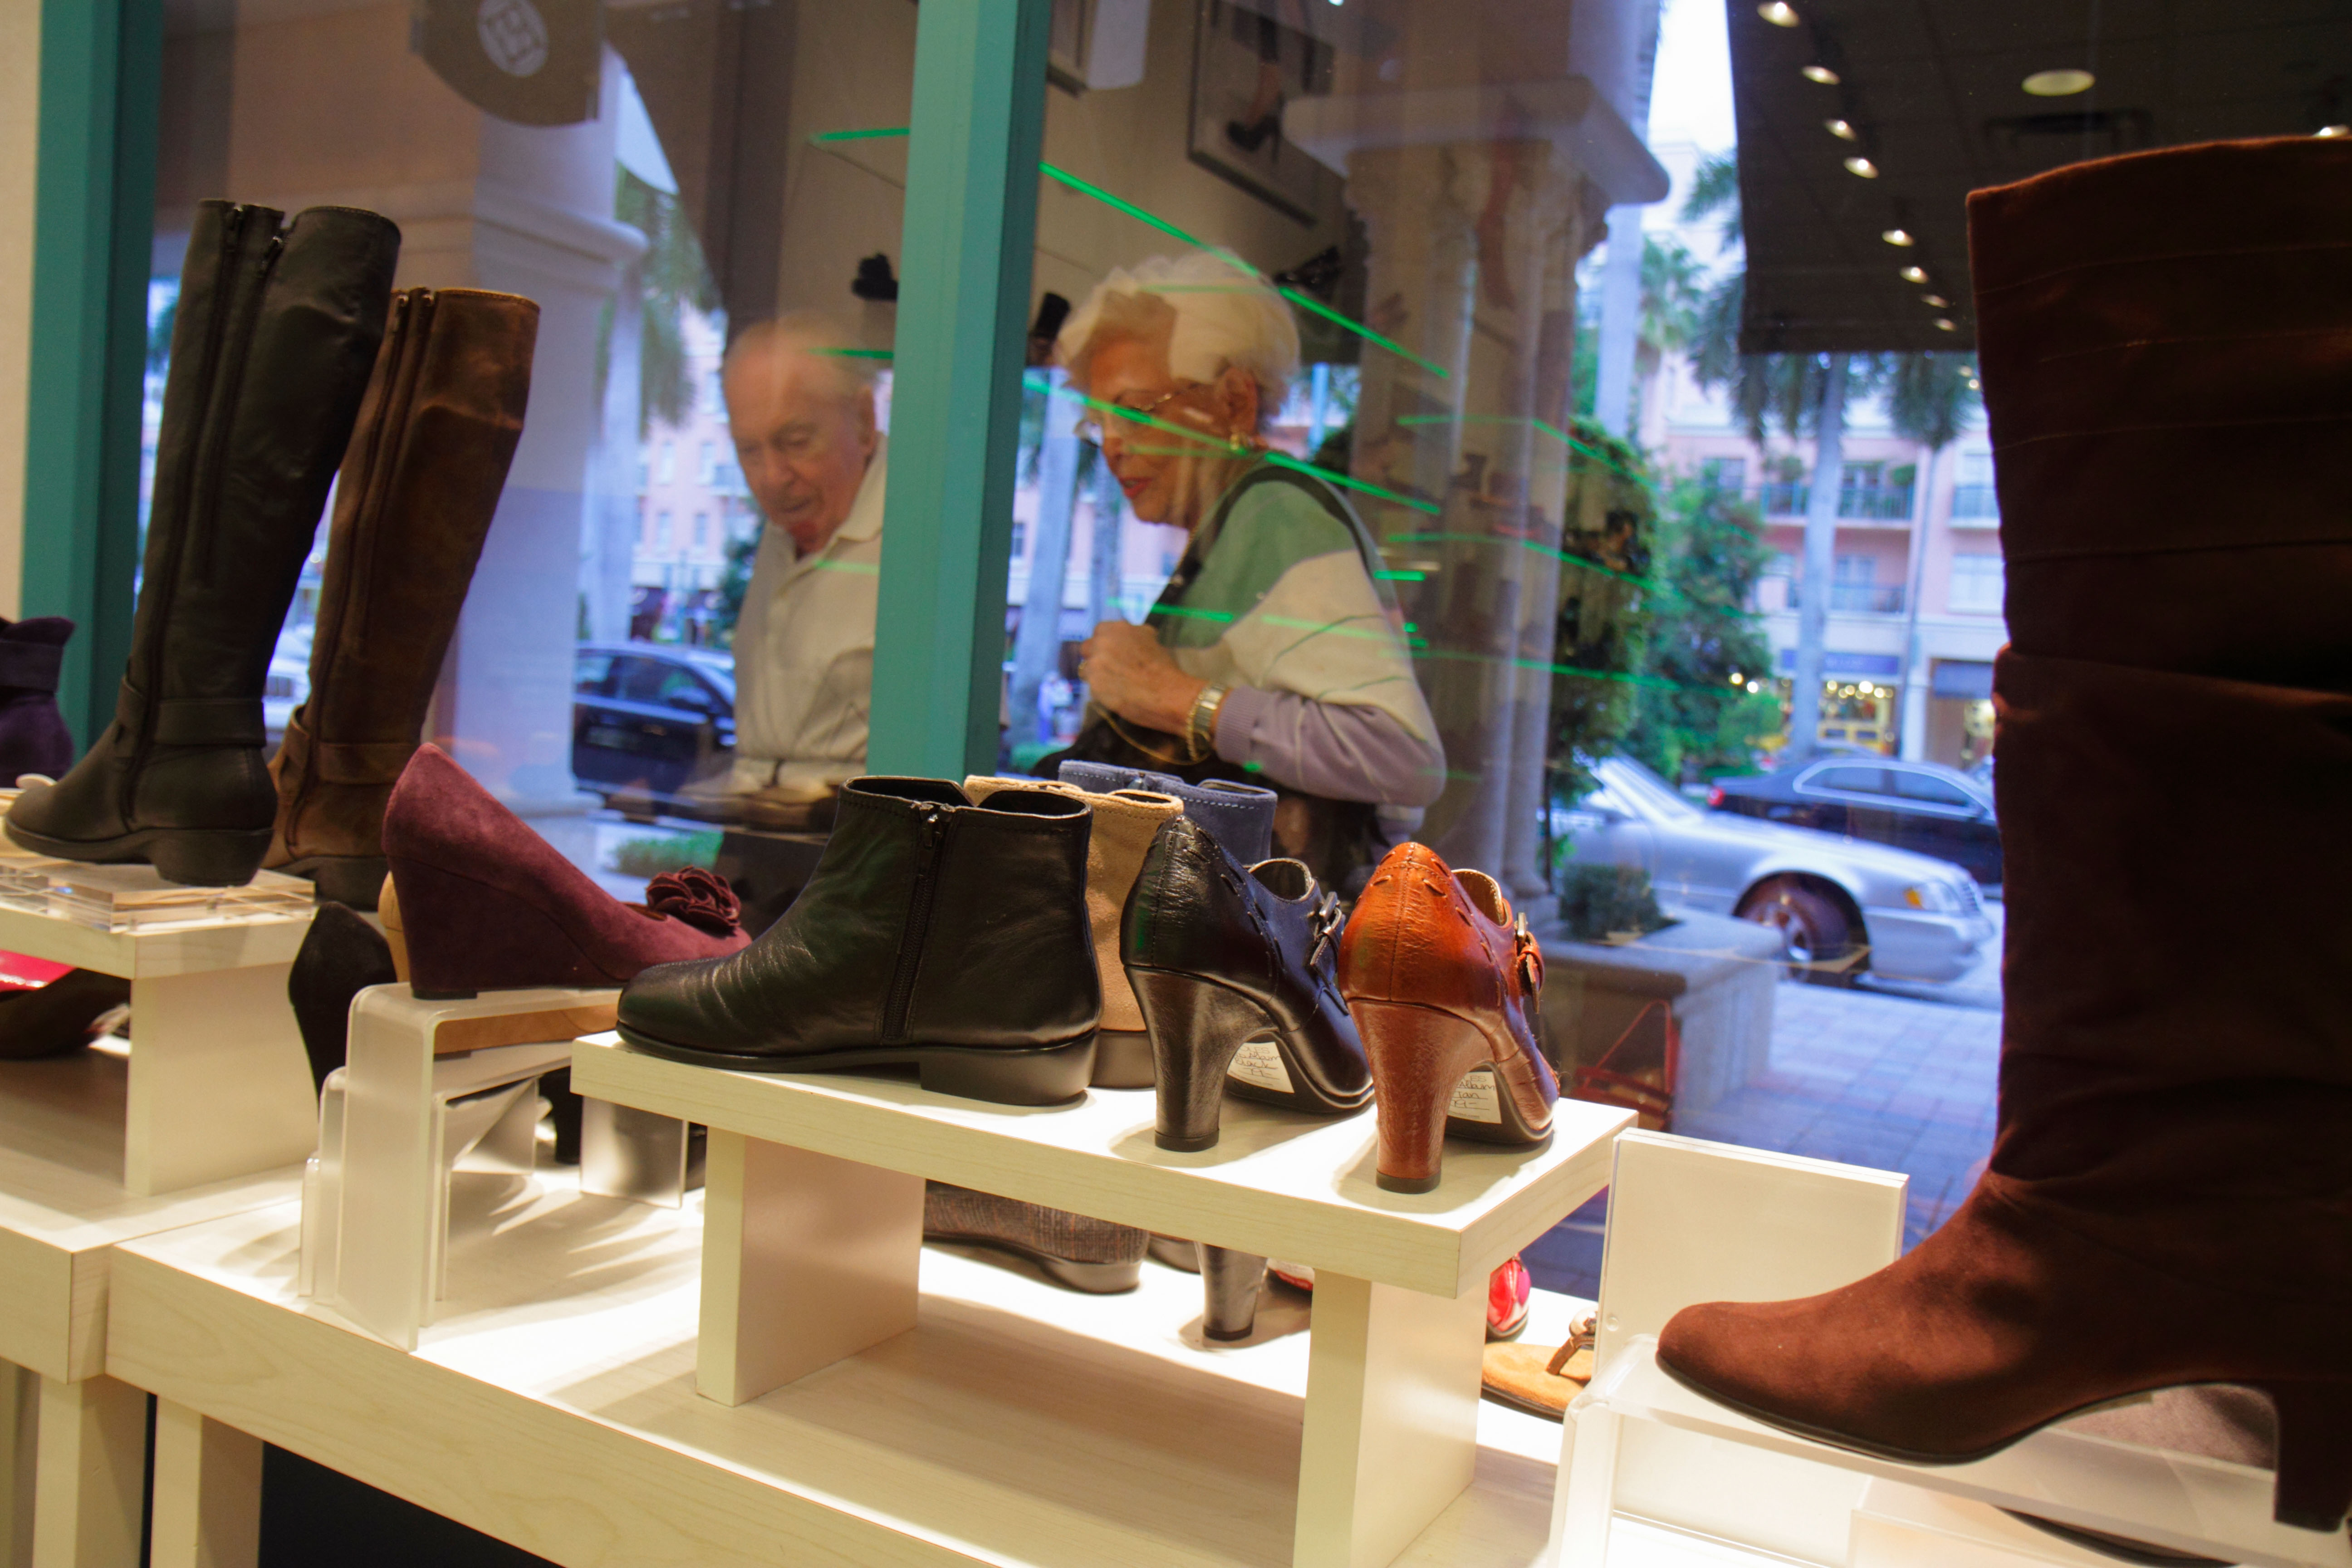 Boca Raton Florida Mizner Park Plaza Real shopping retail display for sale Aerosoles shoes women's comfort suede boots senior ma